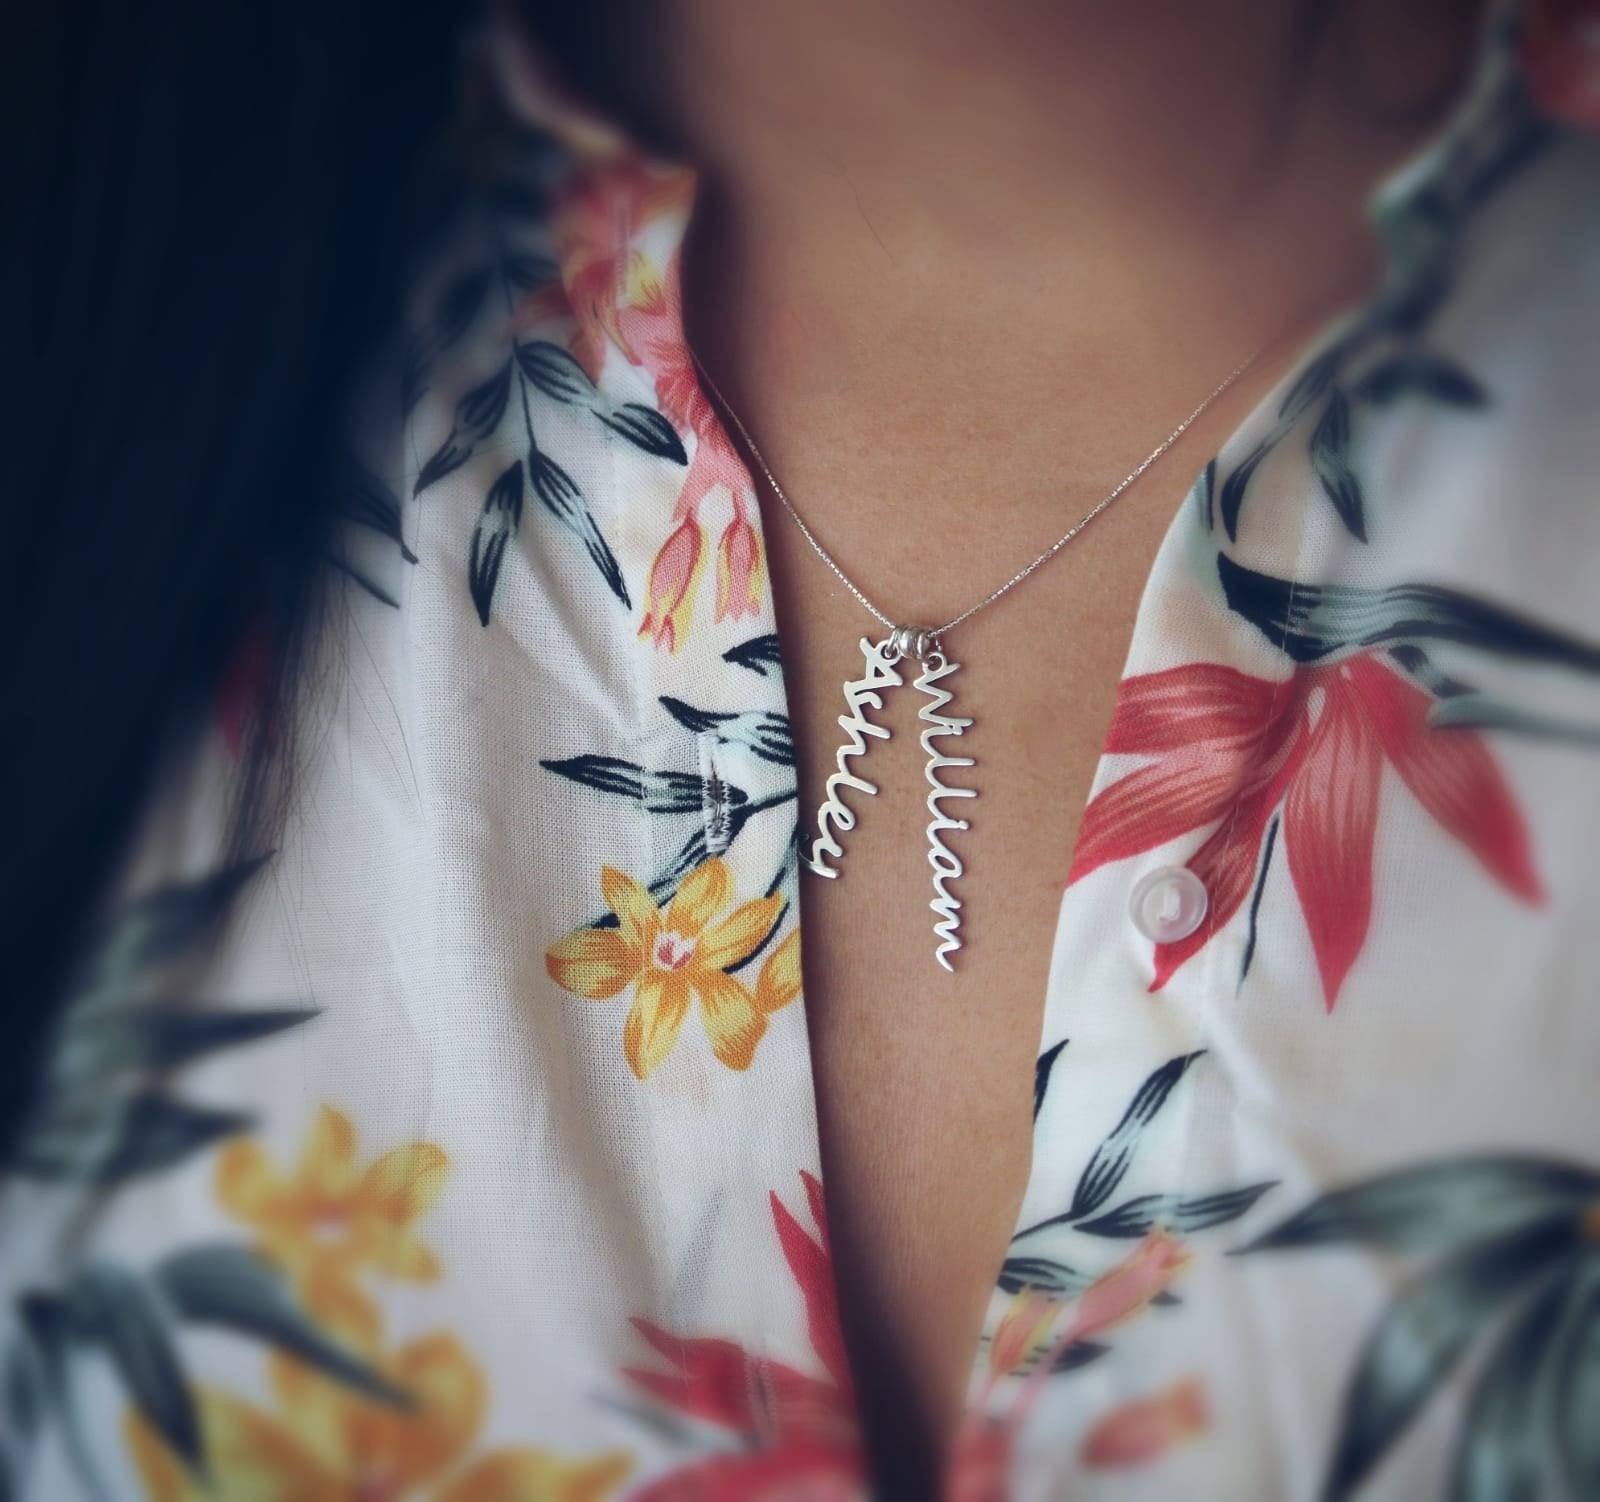 VCN01 - Vertical Cactus Name Necklace